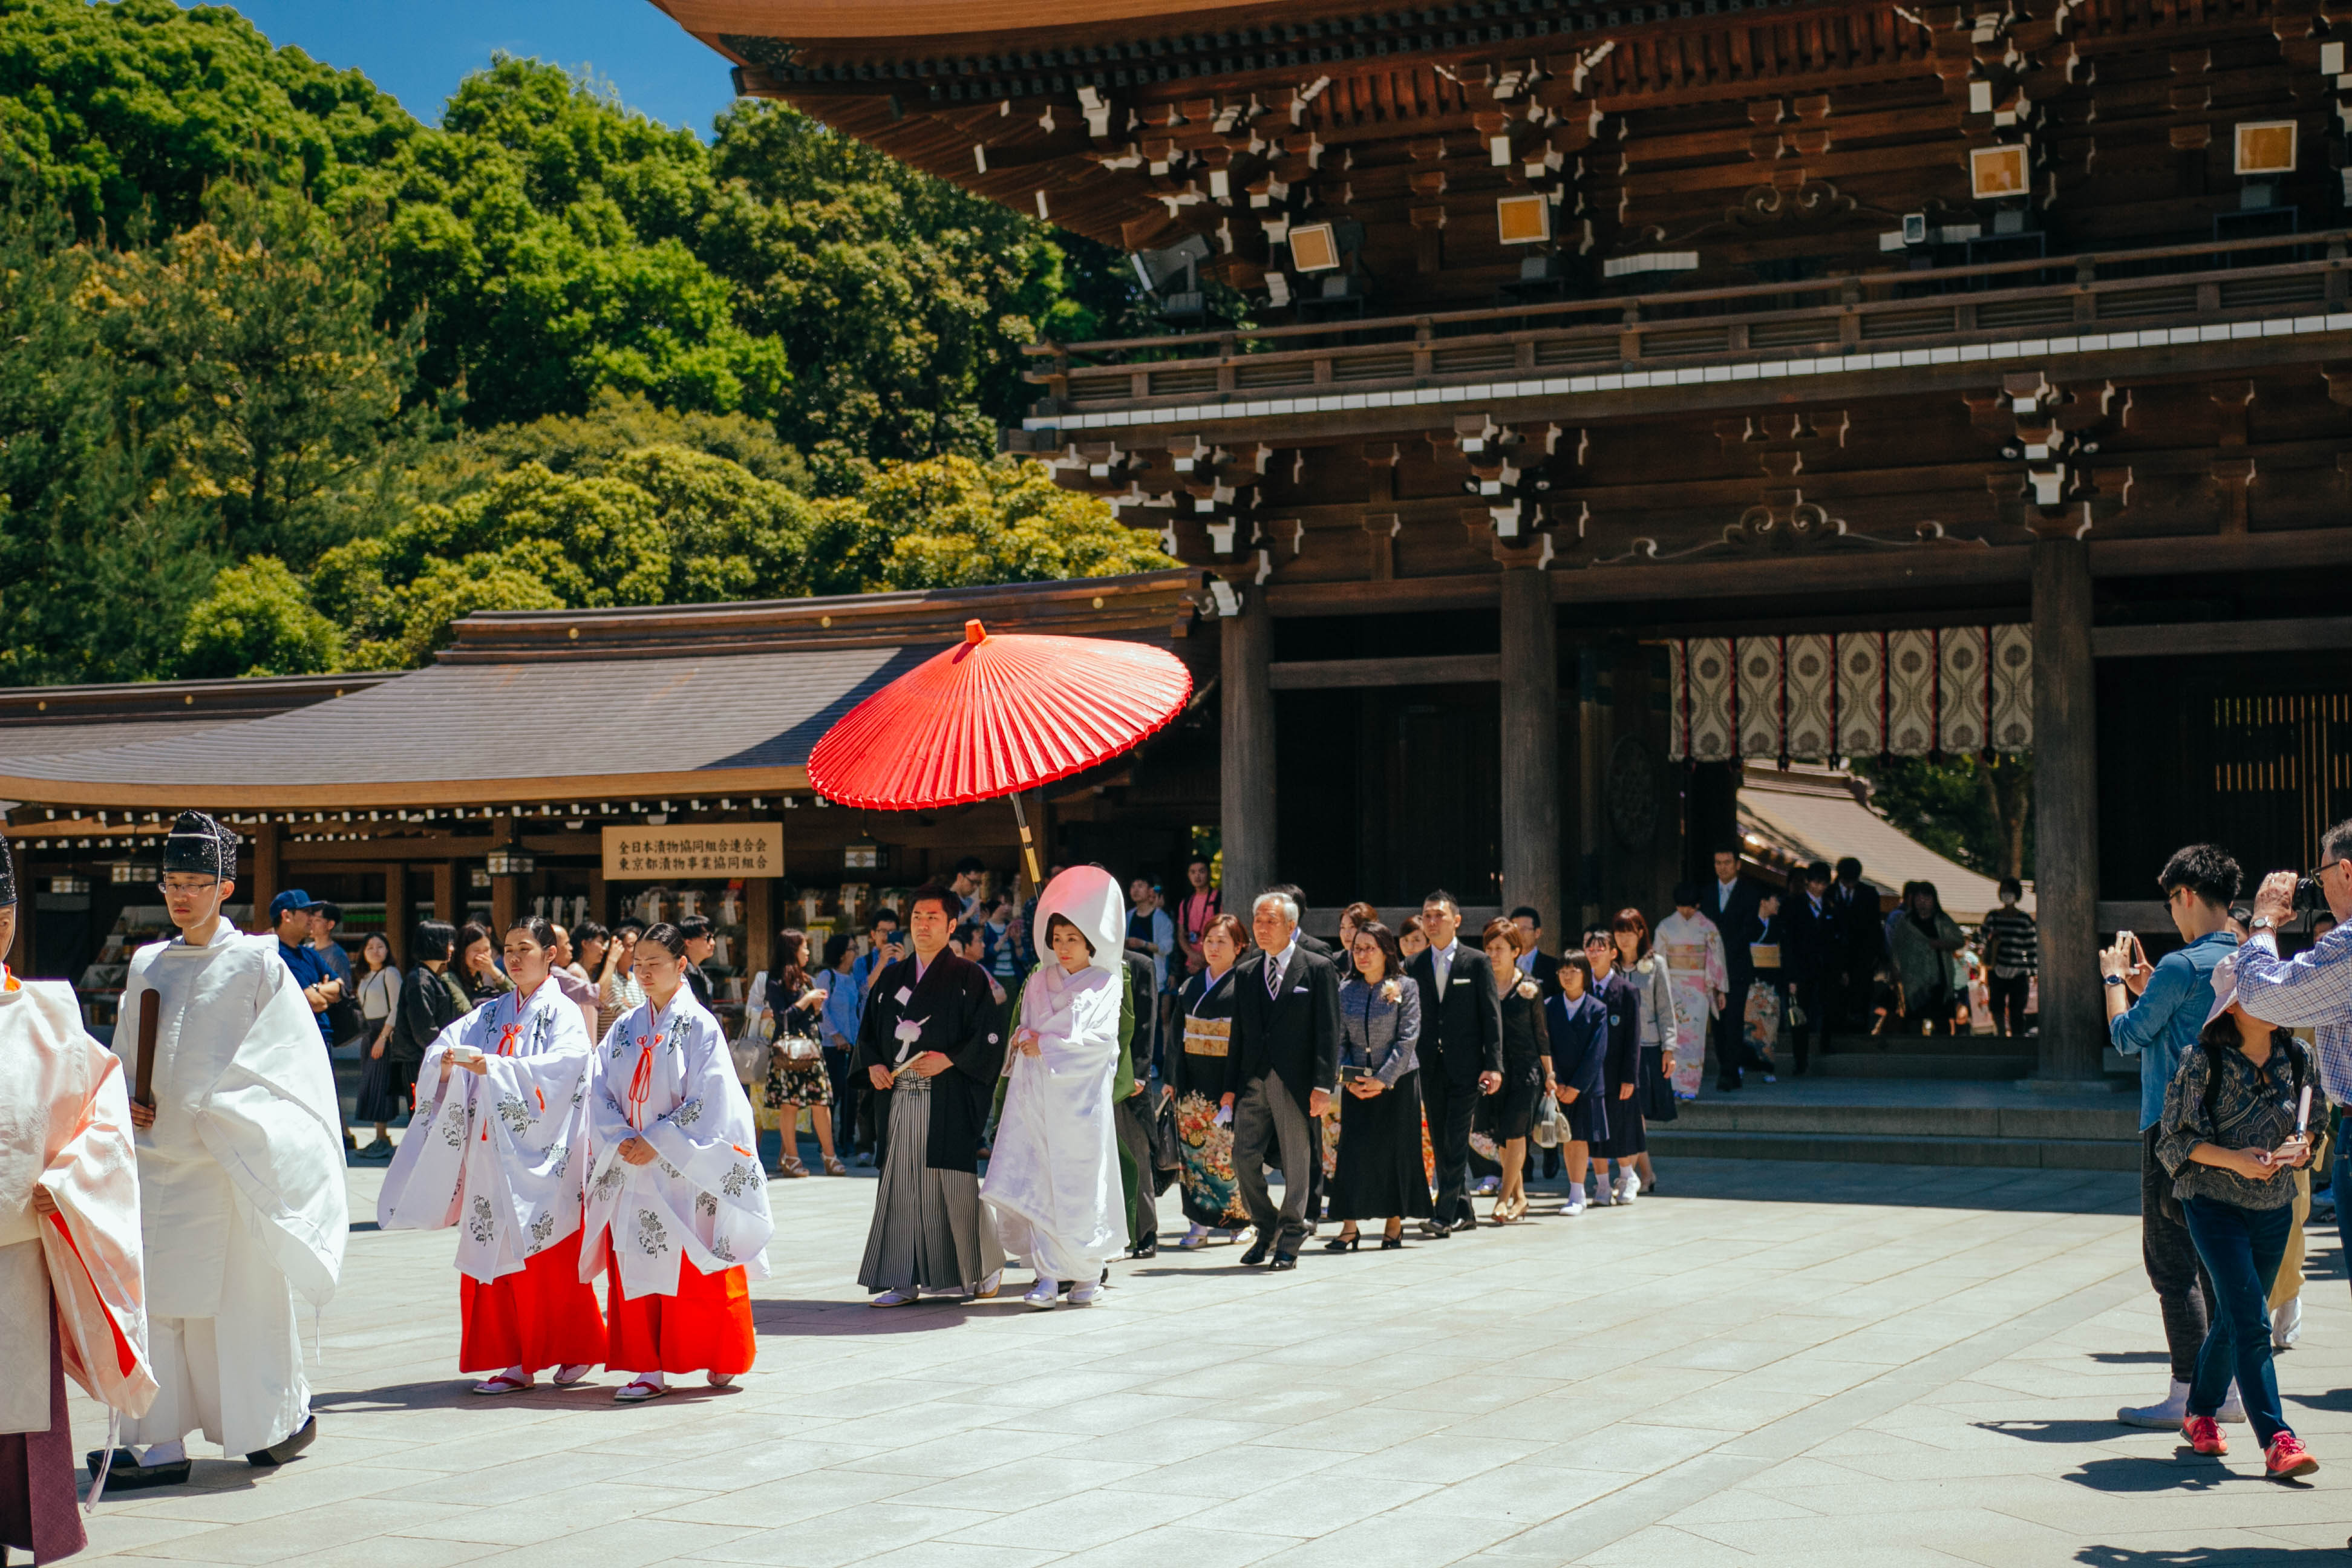 The wedding party donned traditional clothing, with the bride and groom being shaded from the intense sun by a bright red umbrella.